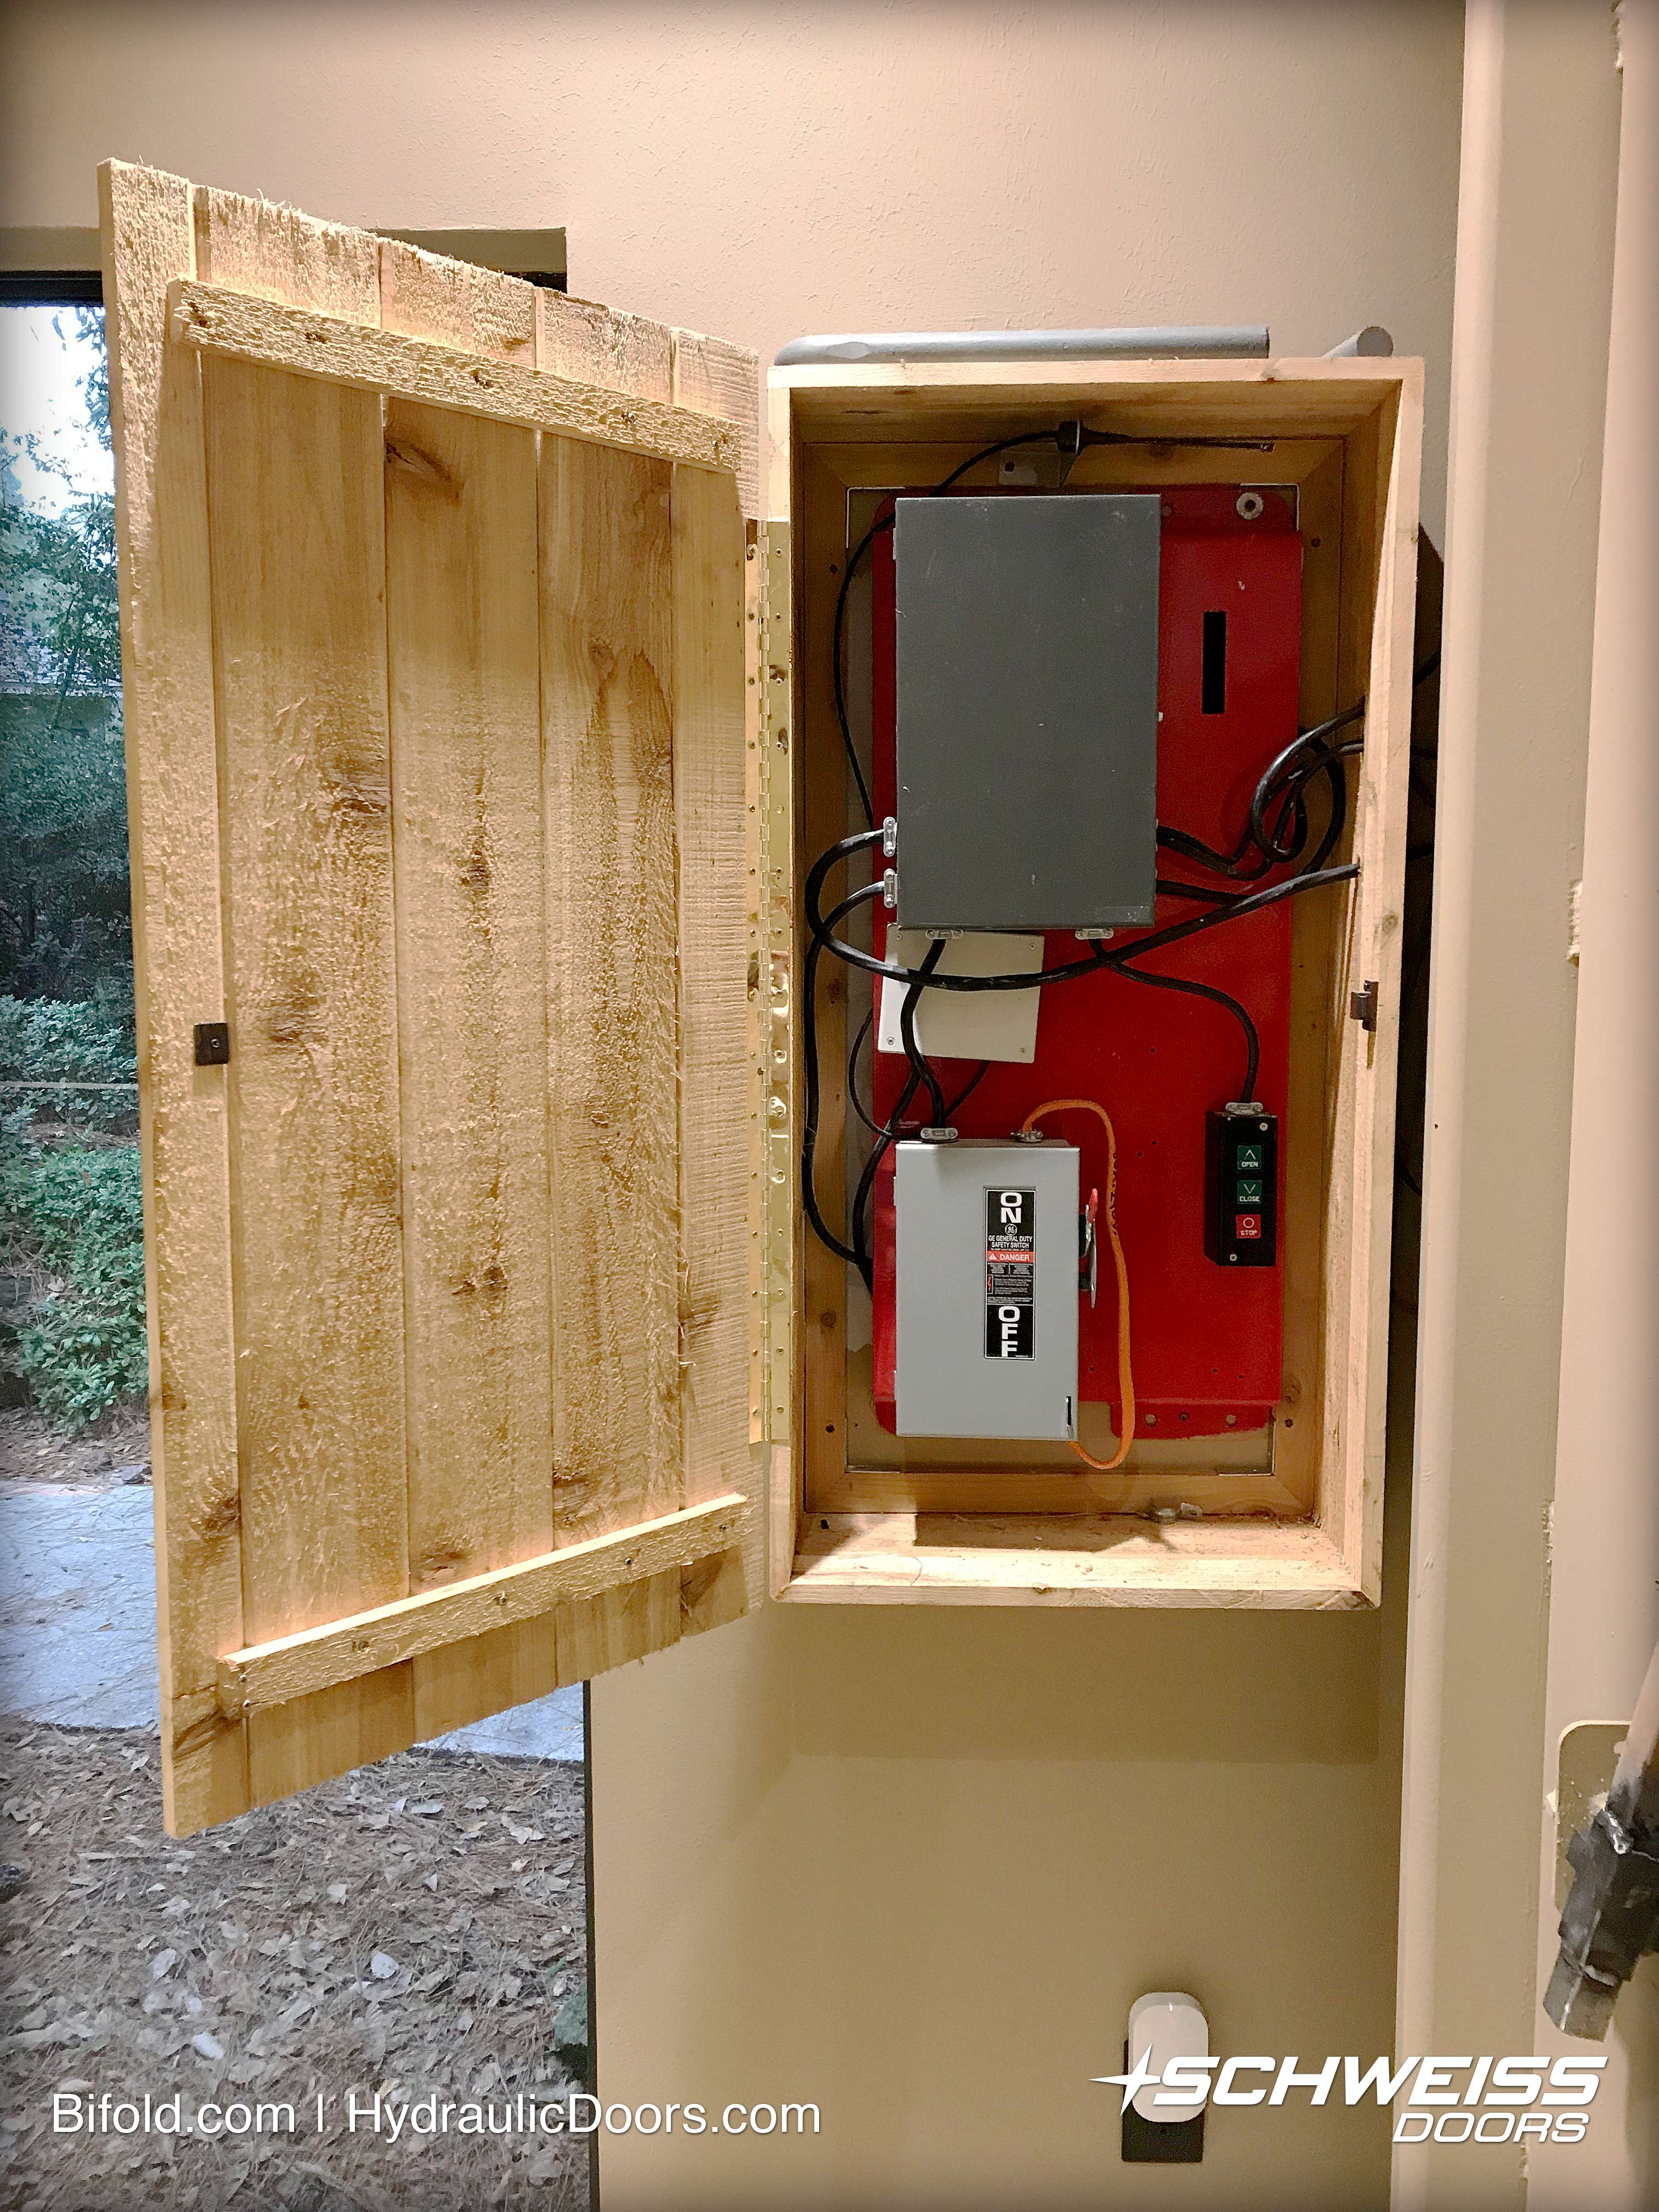 Classy wooden control box with Bifold door electronics inside